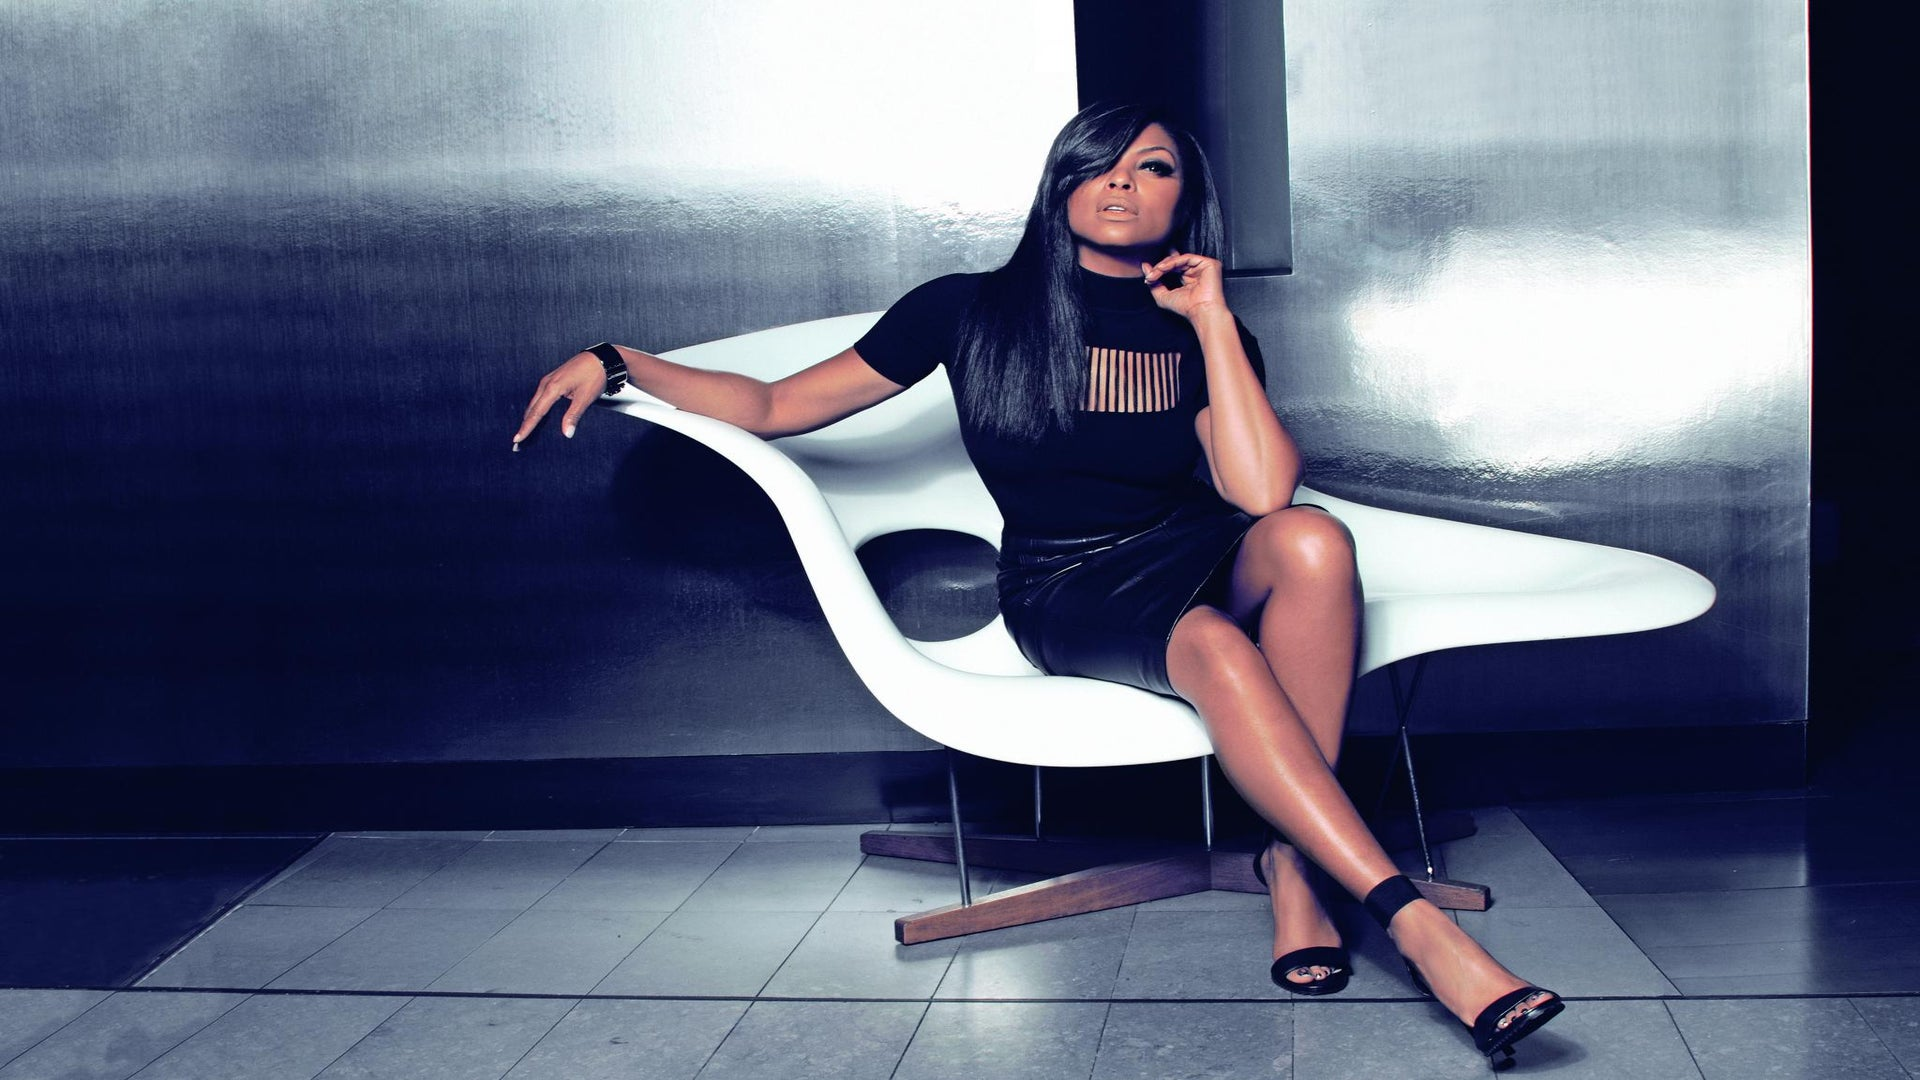 EXCLUSIVE: 'Empire' Star Taraji P. Henson Dishes on Why She's Not Giving Up on Love